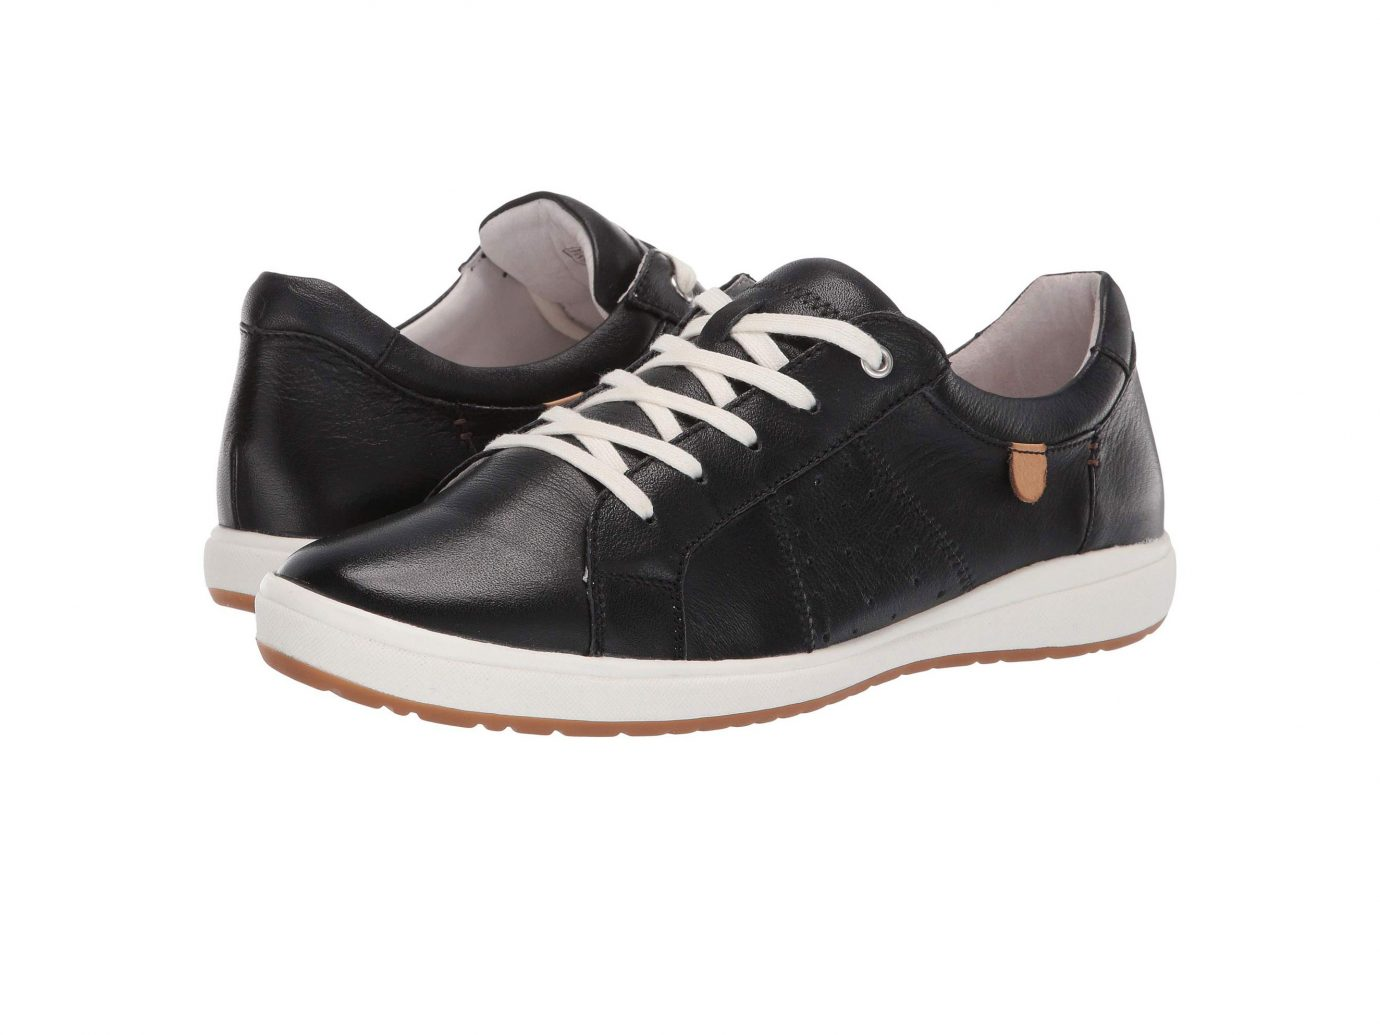 Josef Seibel Caren 01 Sneakers